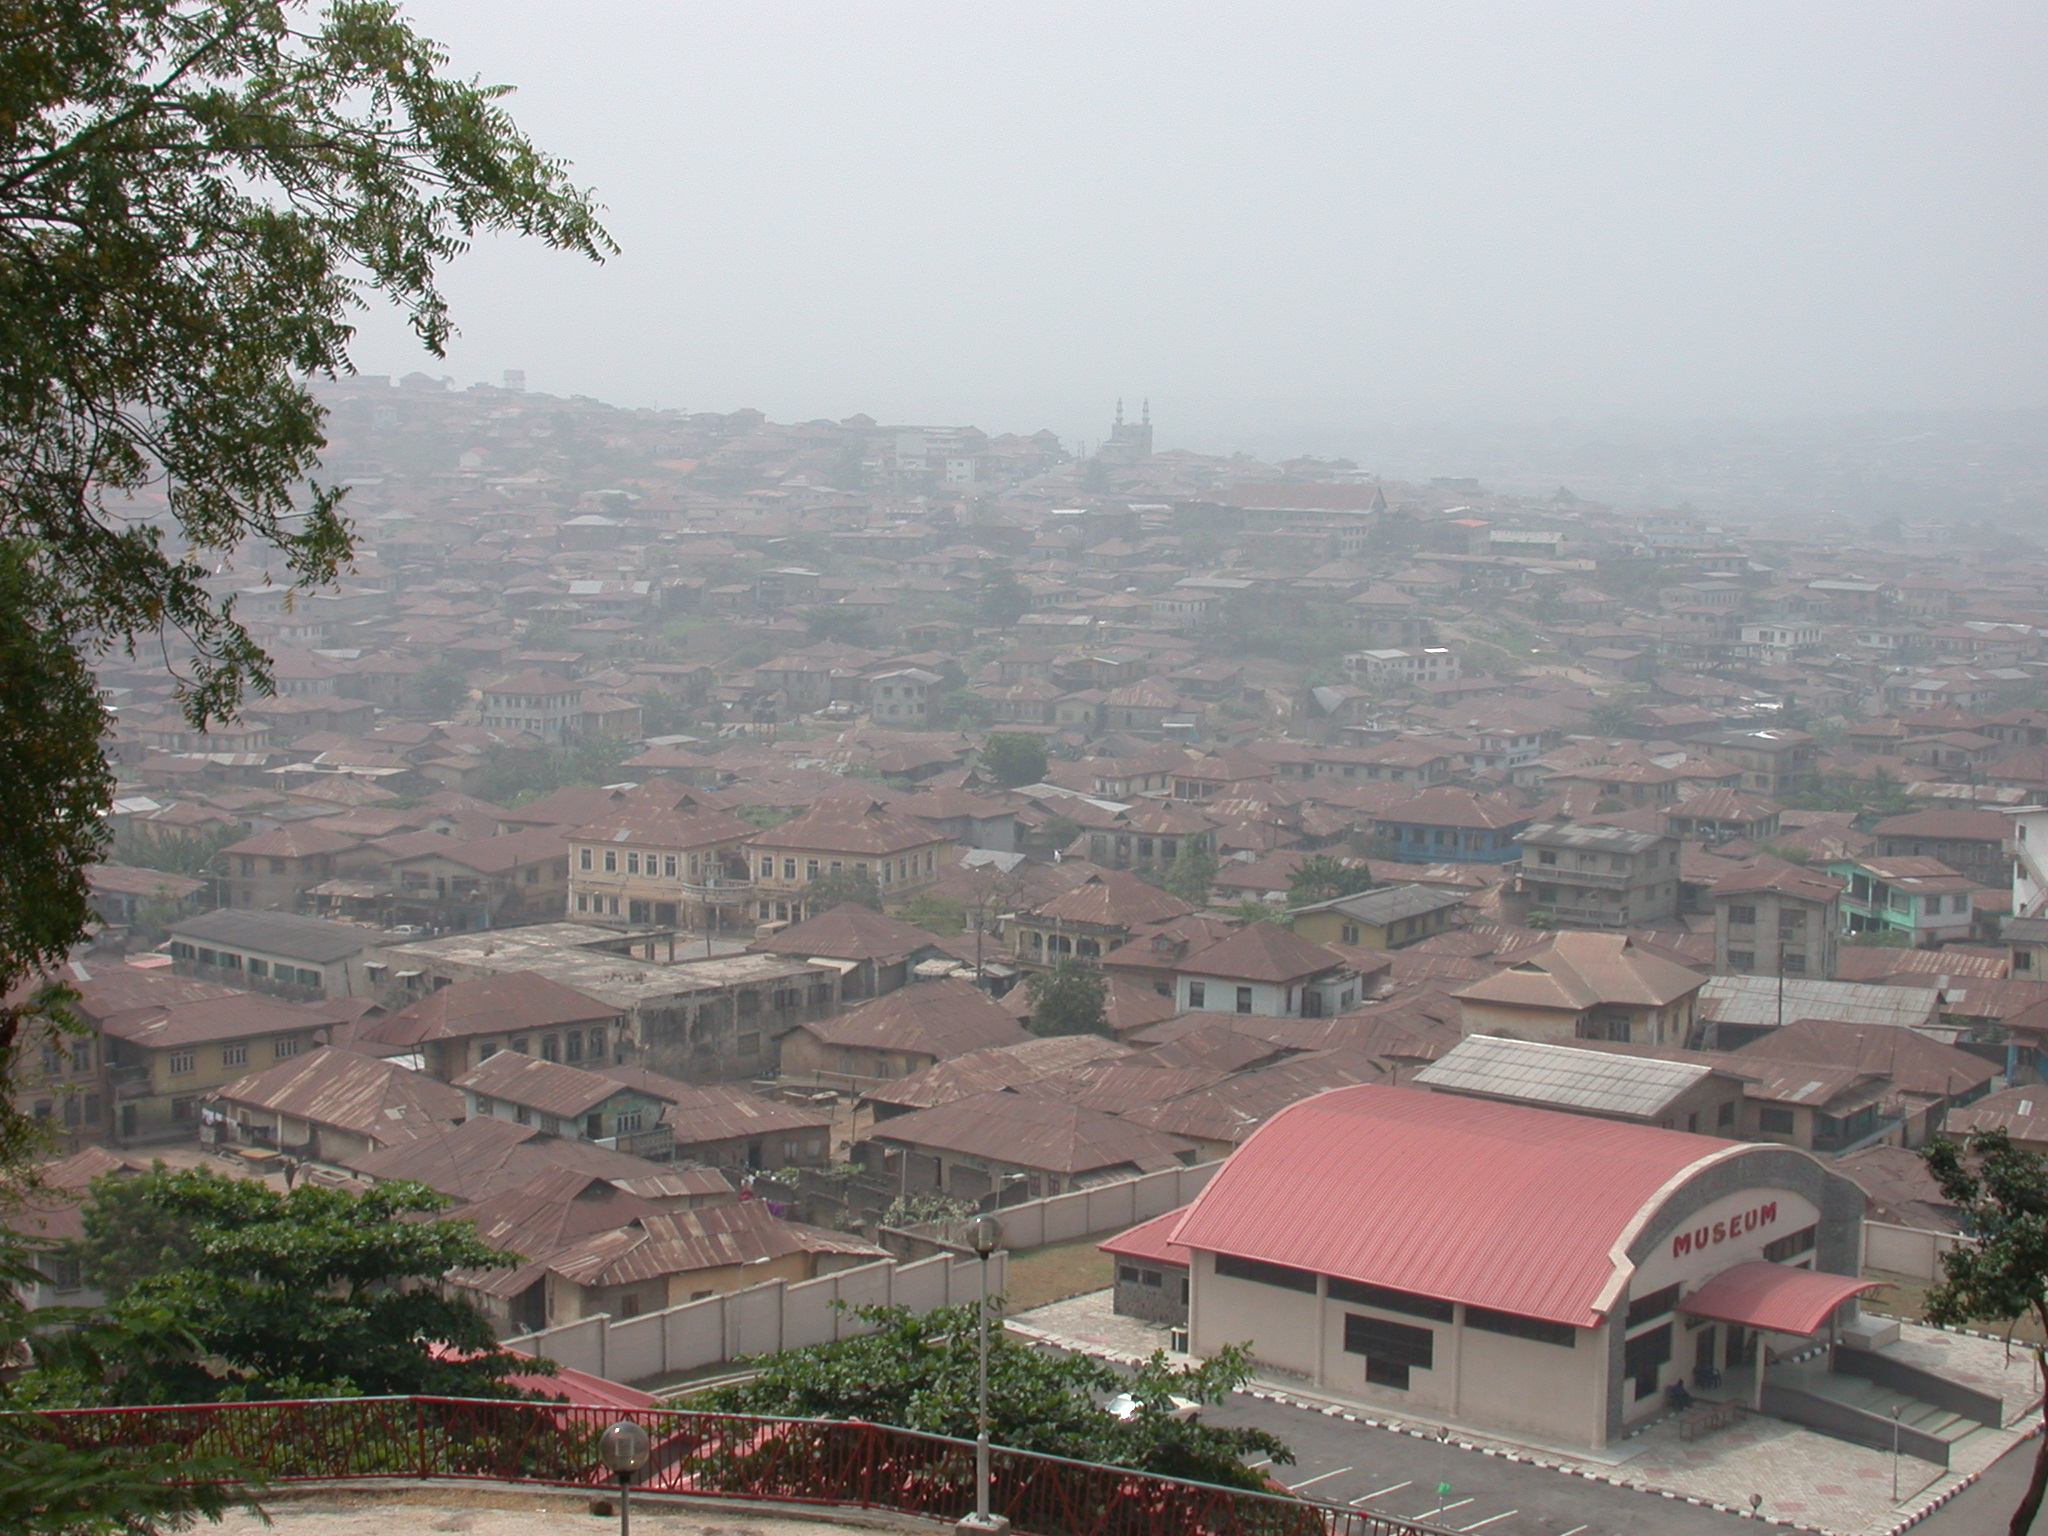 City View, Olumo Rock, Abeokuta, Nigeria